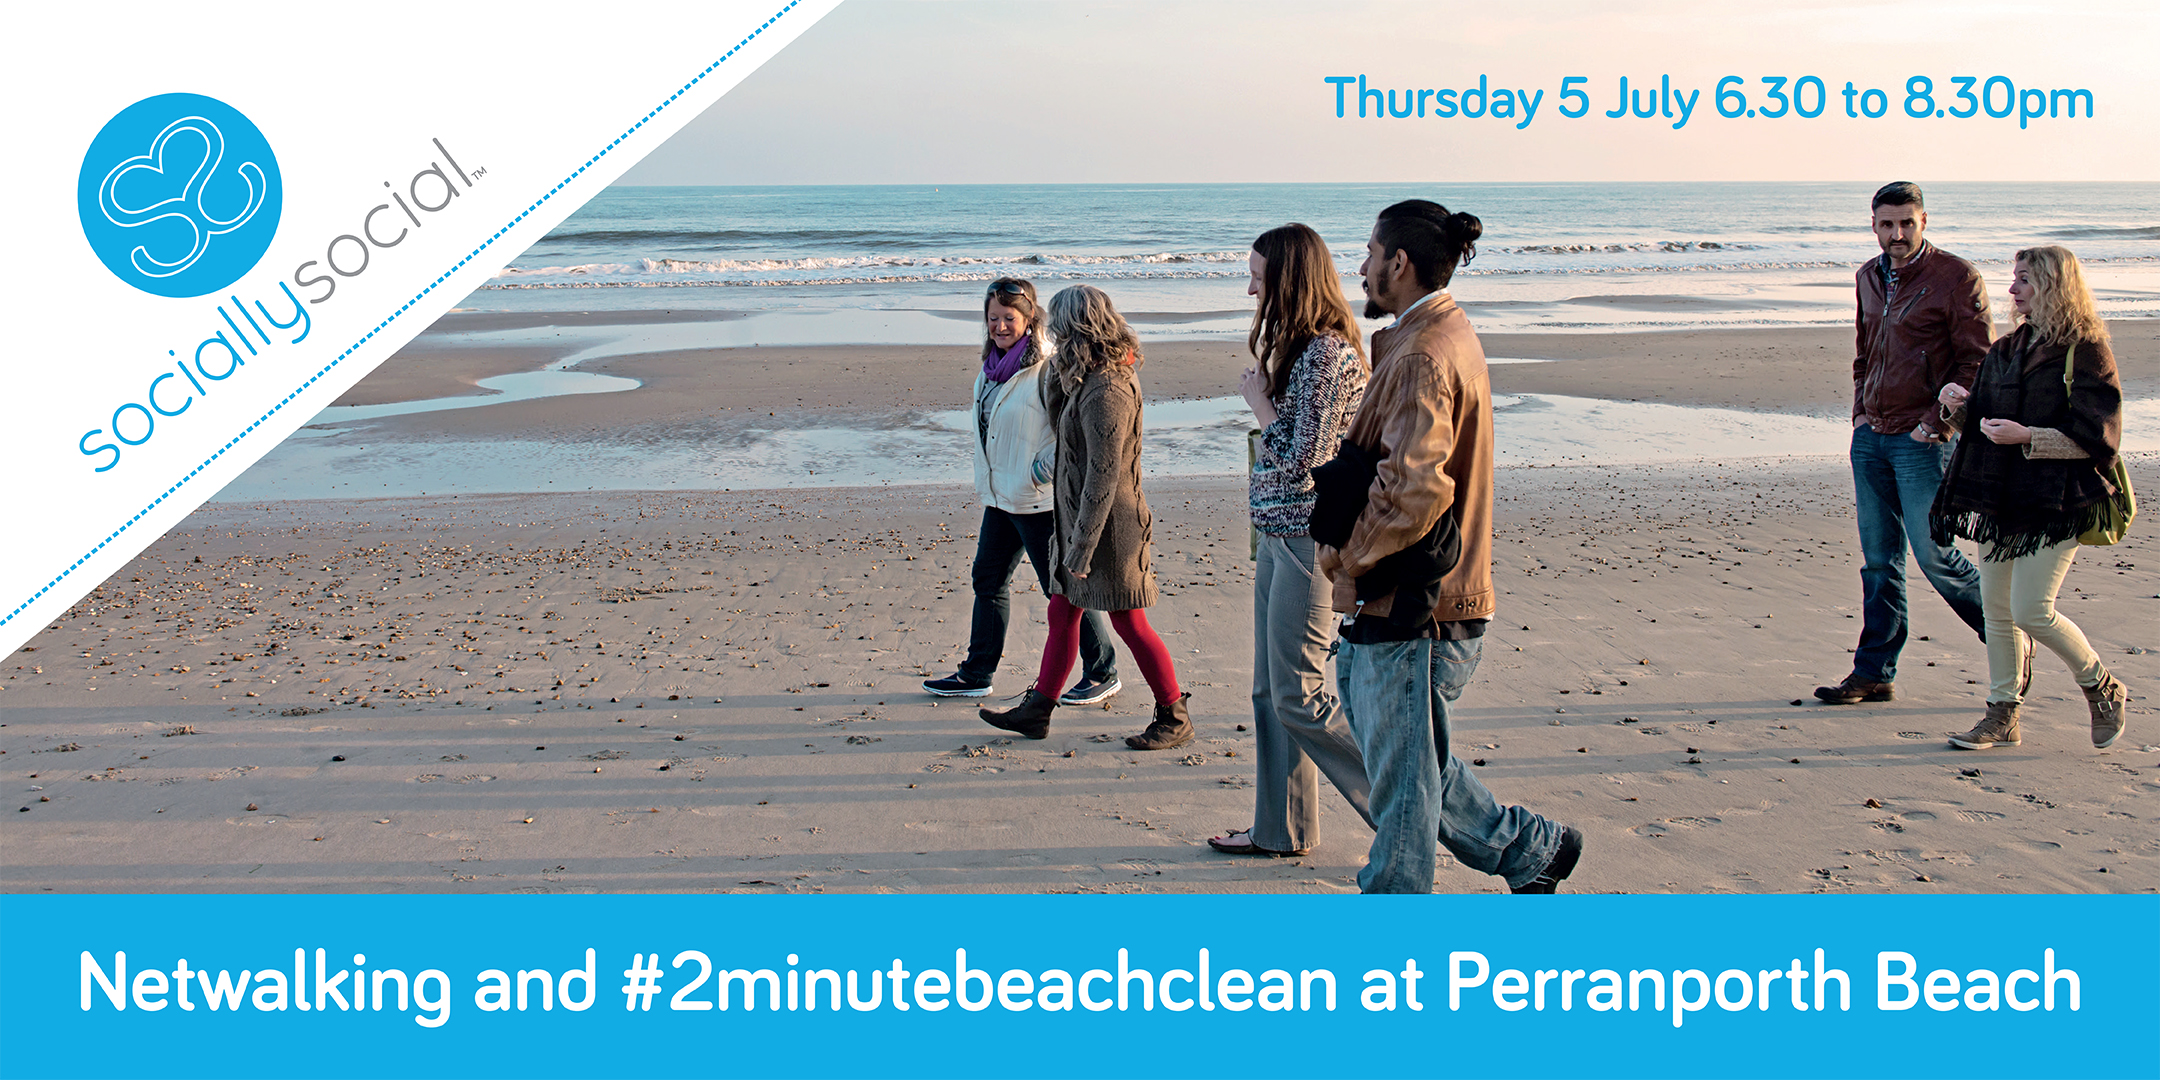 Cornwall Launch: Netwalking and #2minutebeachclean